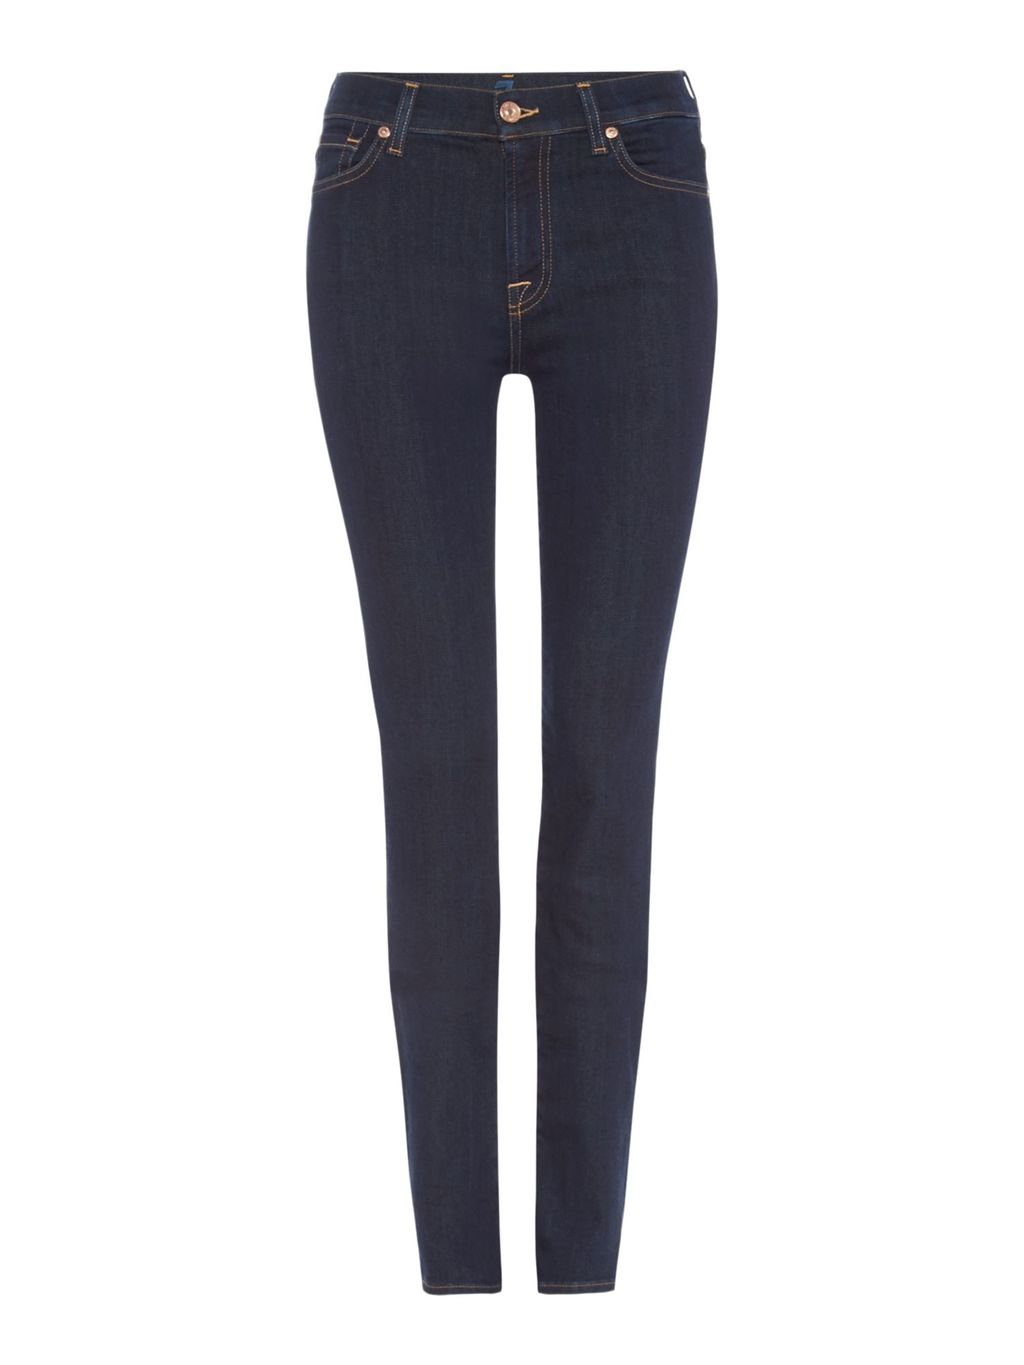 Rozie High Rise Skinny Jeans In Long Beach Dark, Denim Dark Wash - style: skinny leg; length: standard; pattern: plain; pocket detail: traditional 5 pocket; waist: mid/regular rise; predominant colour: navy; occasions: casual; fibres: cotton - stretch; jeans detail: dark wash; texture group: denim; pattern type: fabric; season: a/w 2015